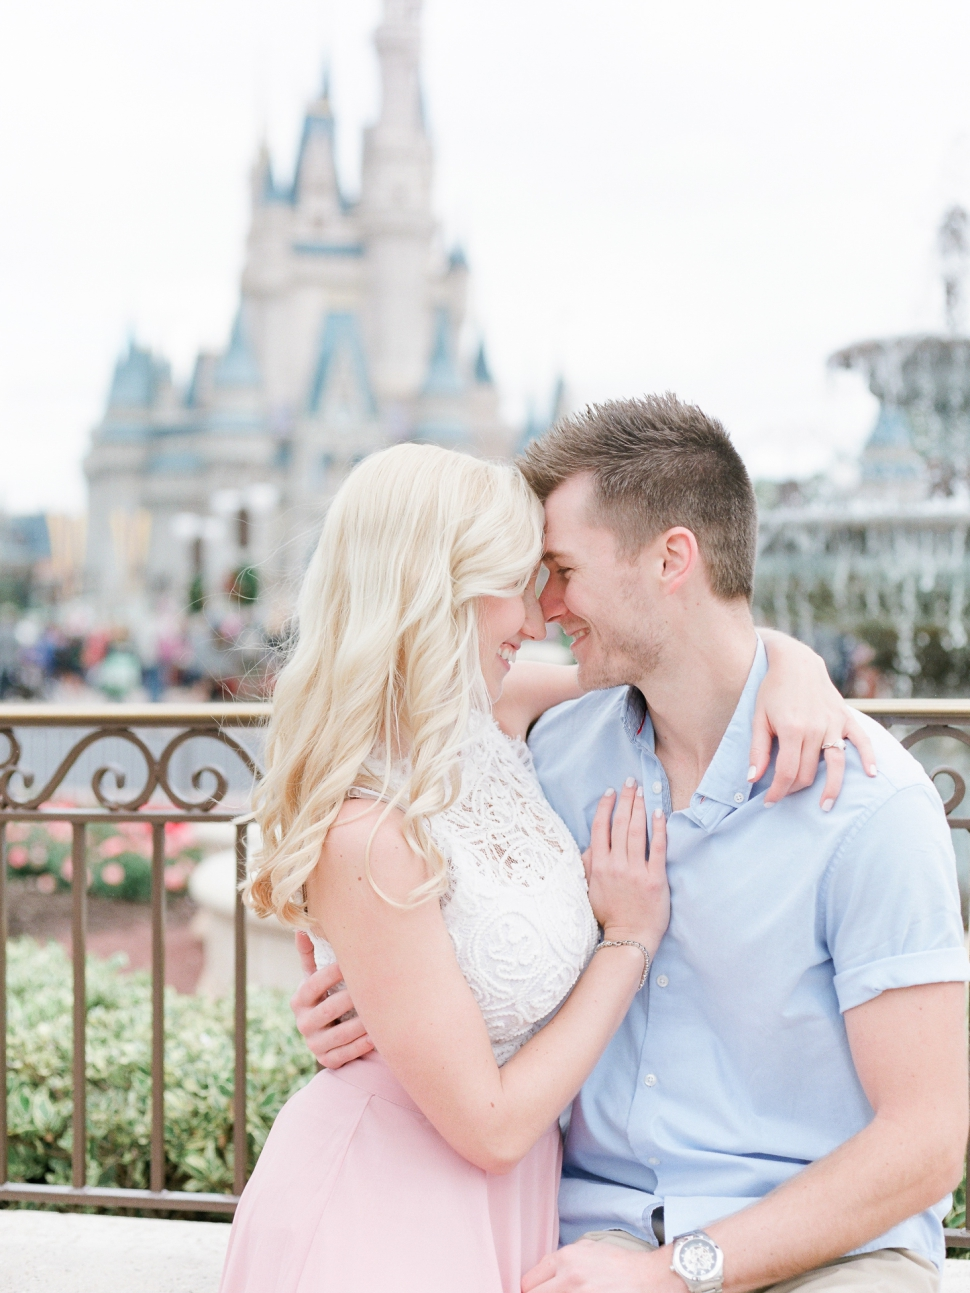 Disney-World-Engagement-Photographer-Cassi-Claire-Disney-World-Orlando-Florida_04.jpg